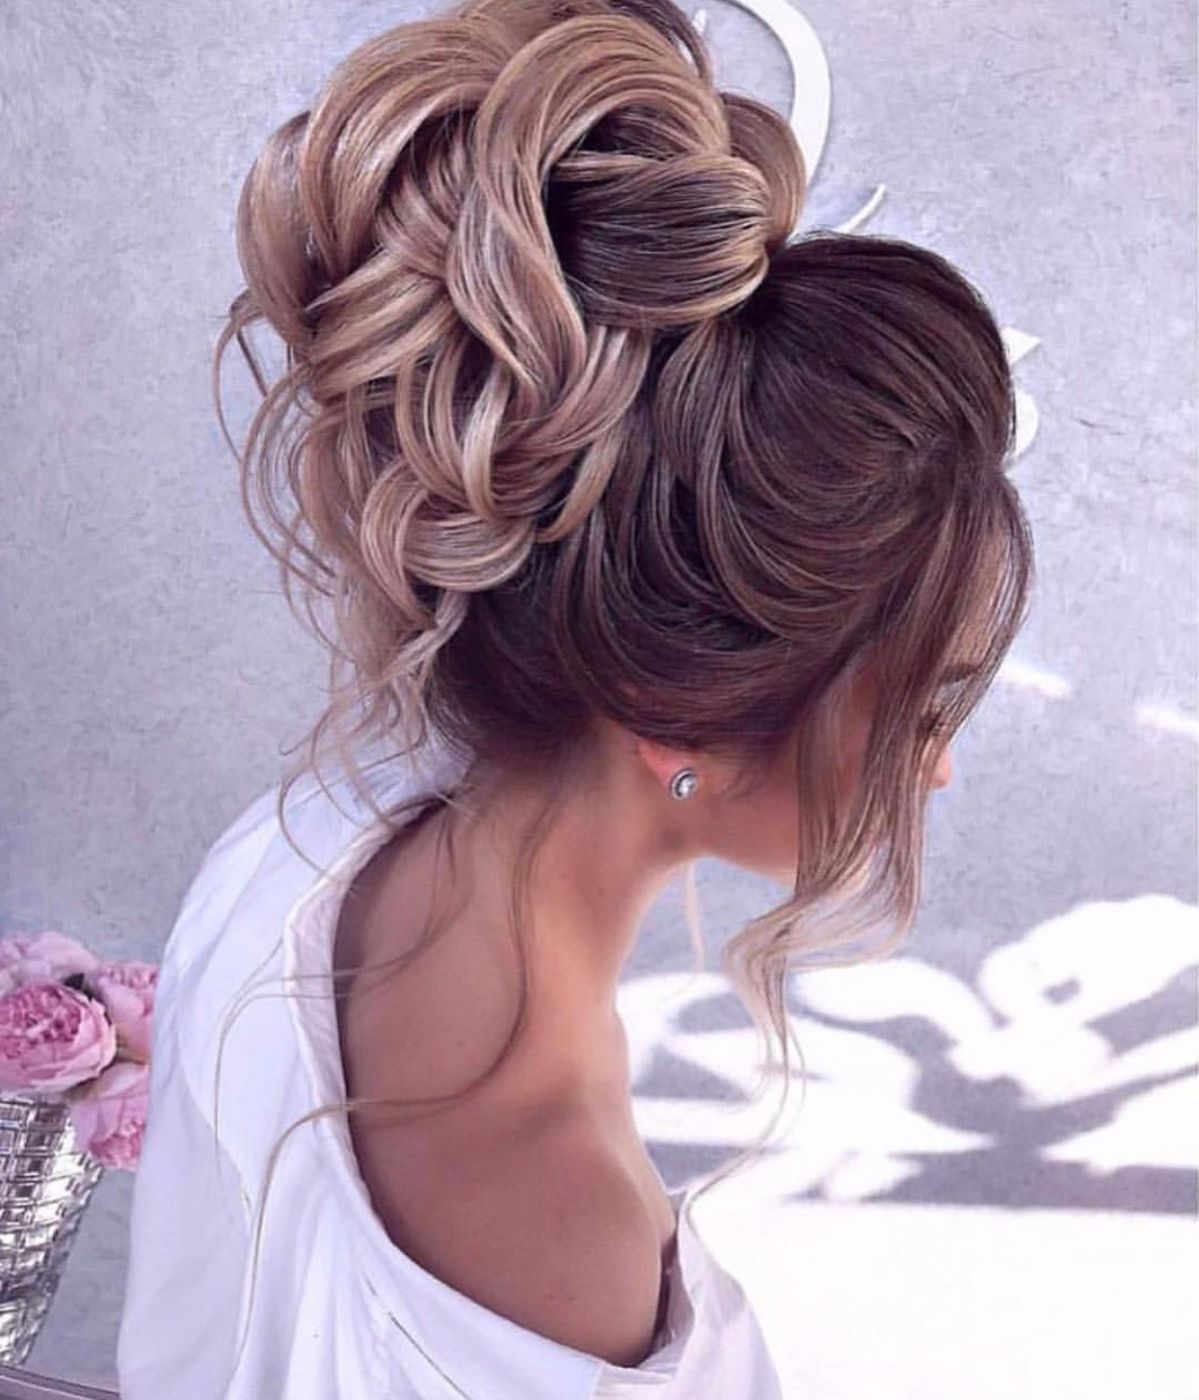 "Absolutely breathtaking braided bun updo pinned to perfection— ideal for any wedding or prom hairstyle.<p><a href=""http://www.homeinteriordesign.org/2018/02/short-guide-to-interior-decoration.html"">Short guide to interior decoration</a></p>"